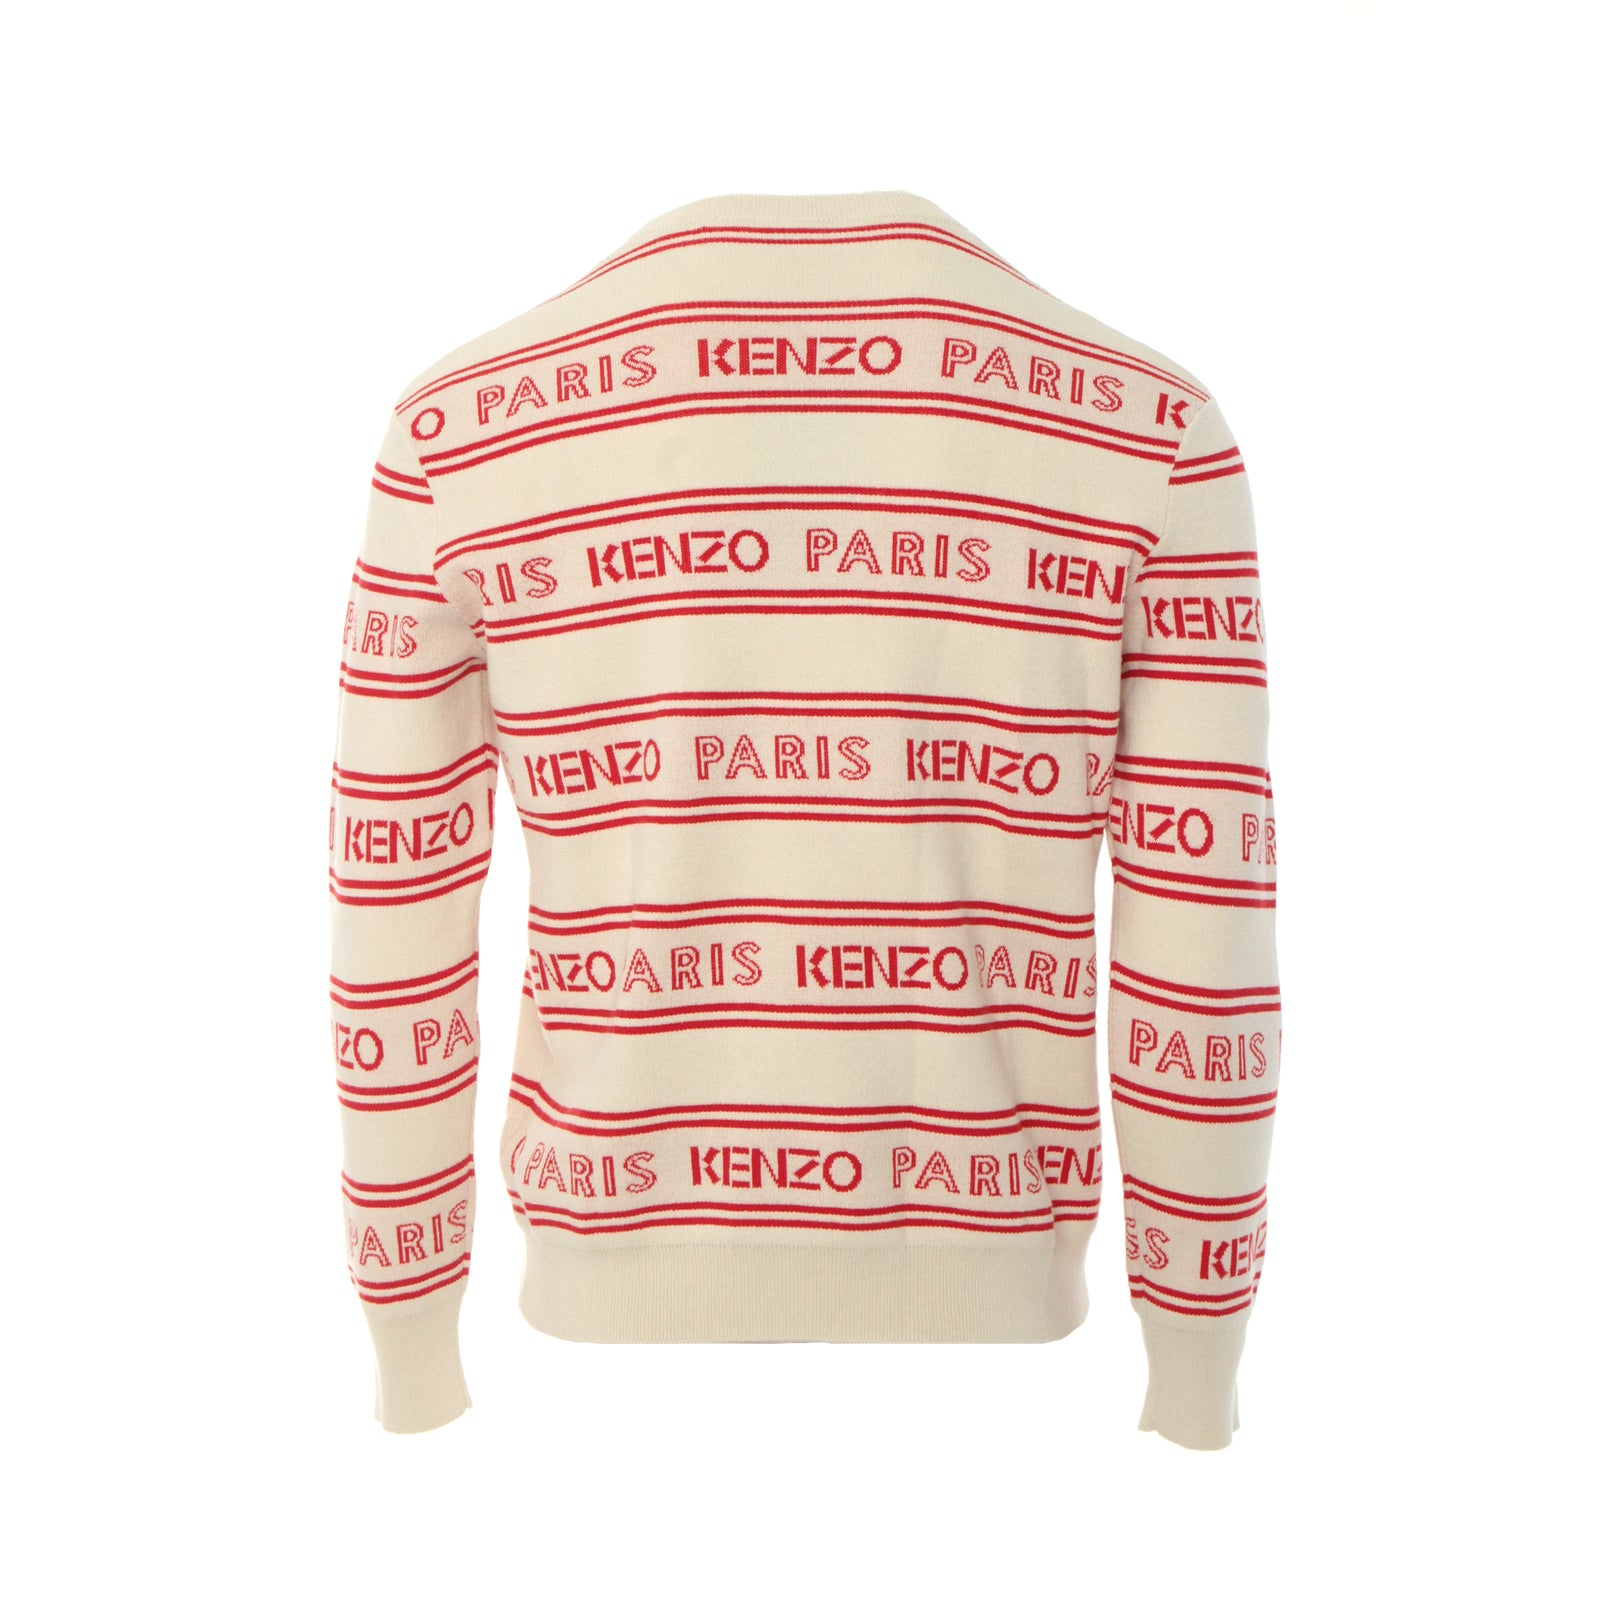 Kenzo Paris All Over Kenzo Jacquard Beige Red